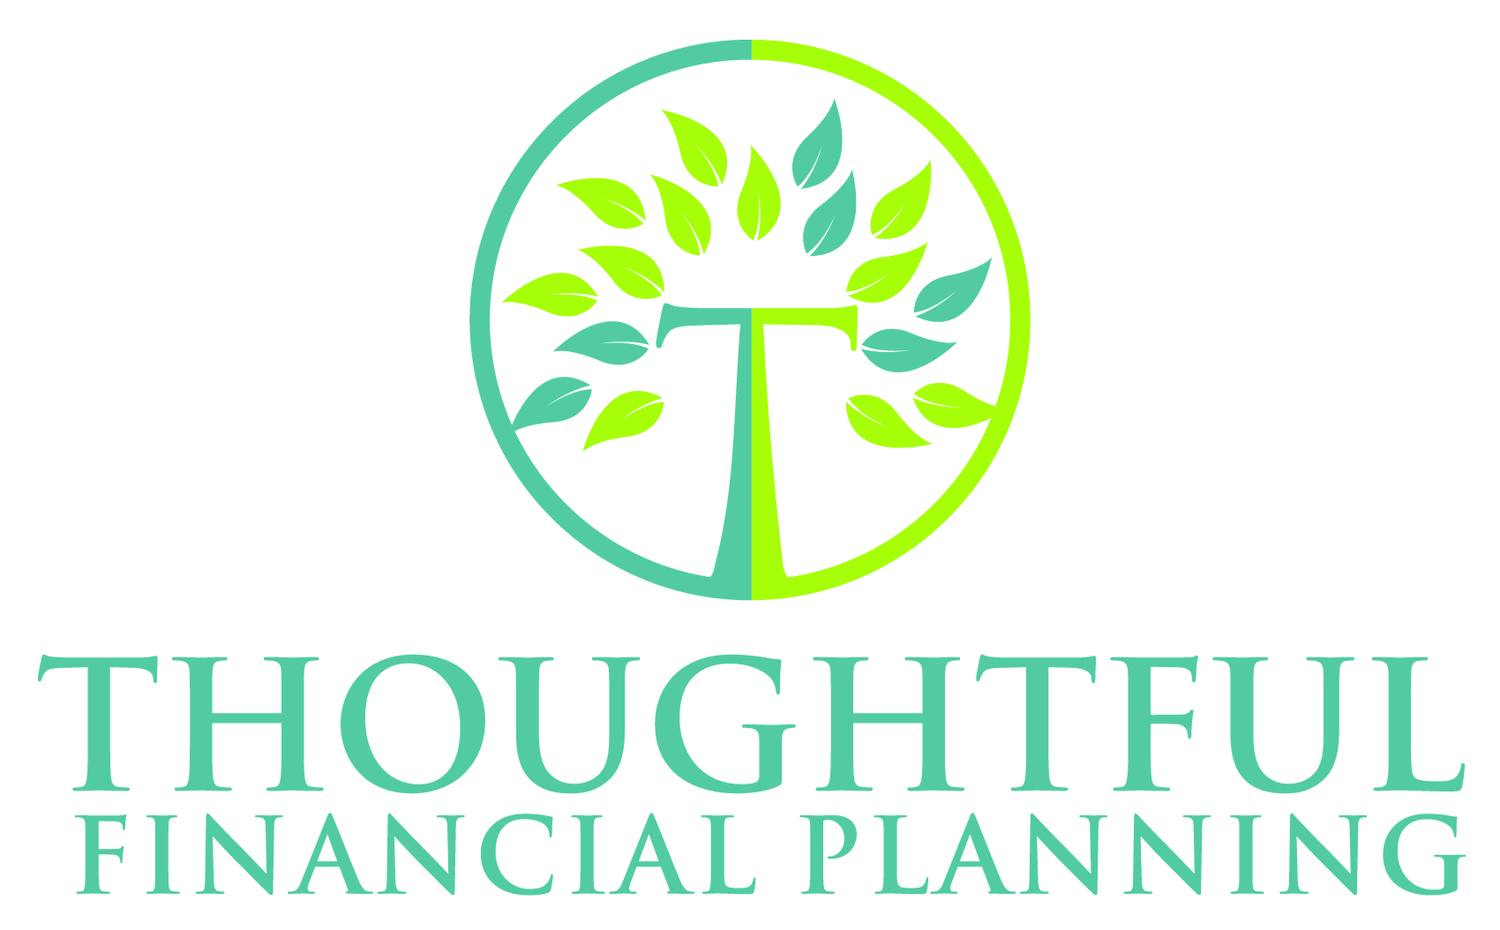 Thoughtful Financial Planning